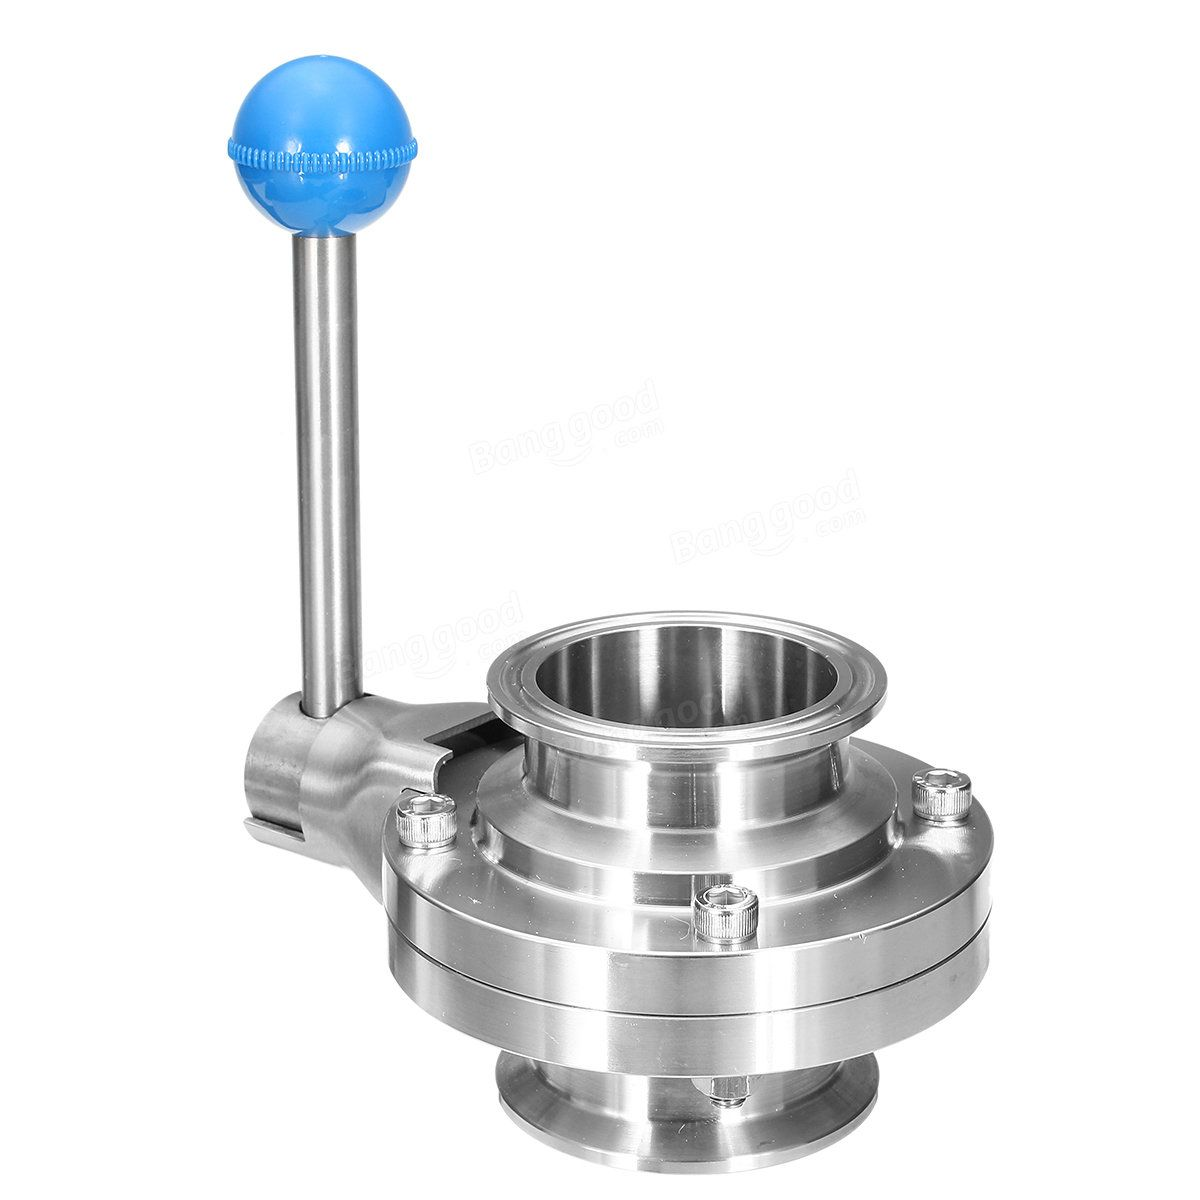 2 Inch Butterfly Valve Tri-Clamp Stainless 304 Silicone Seal